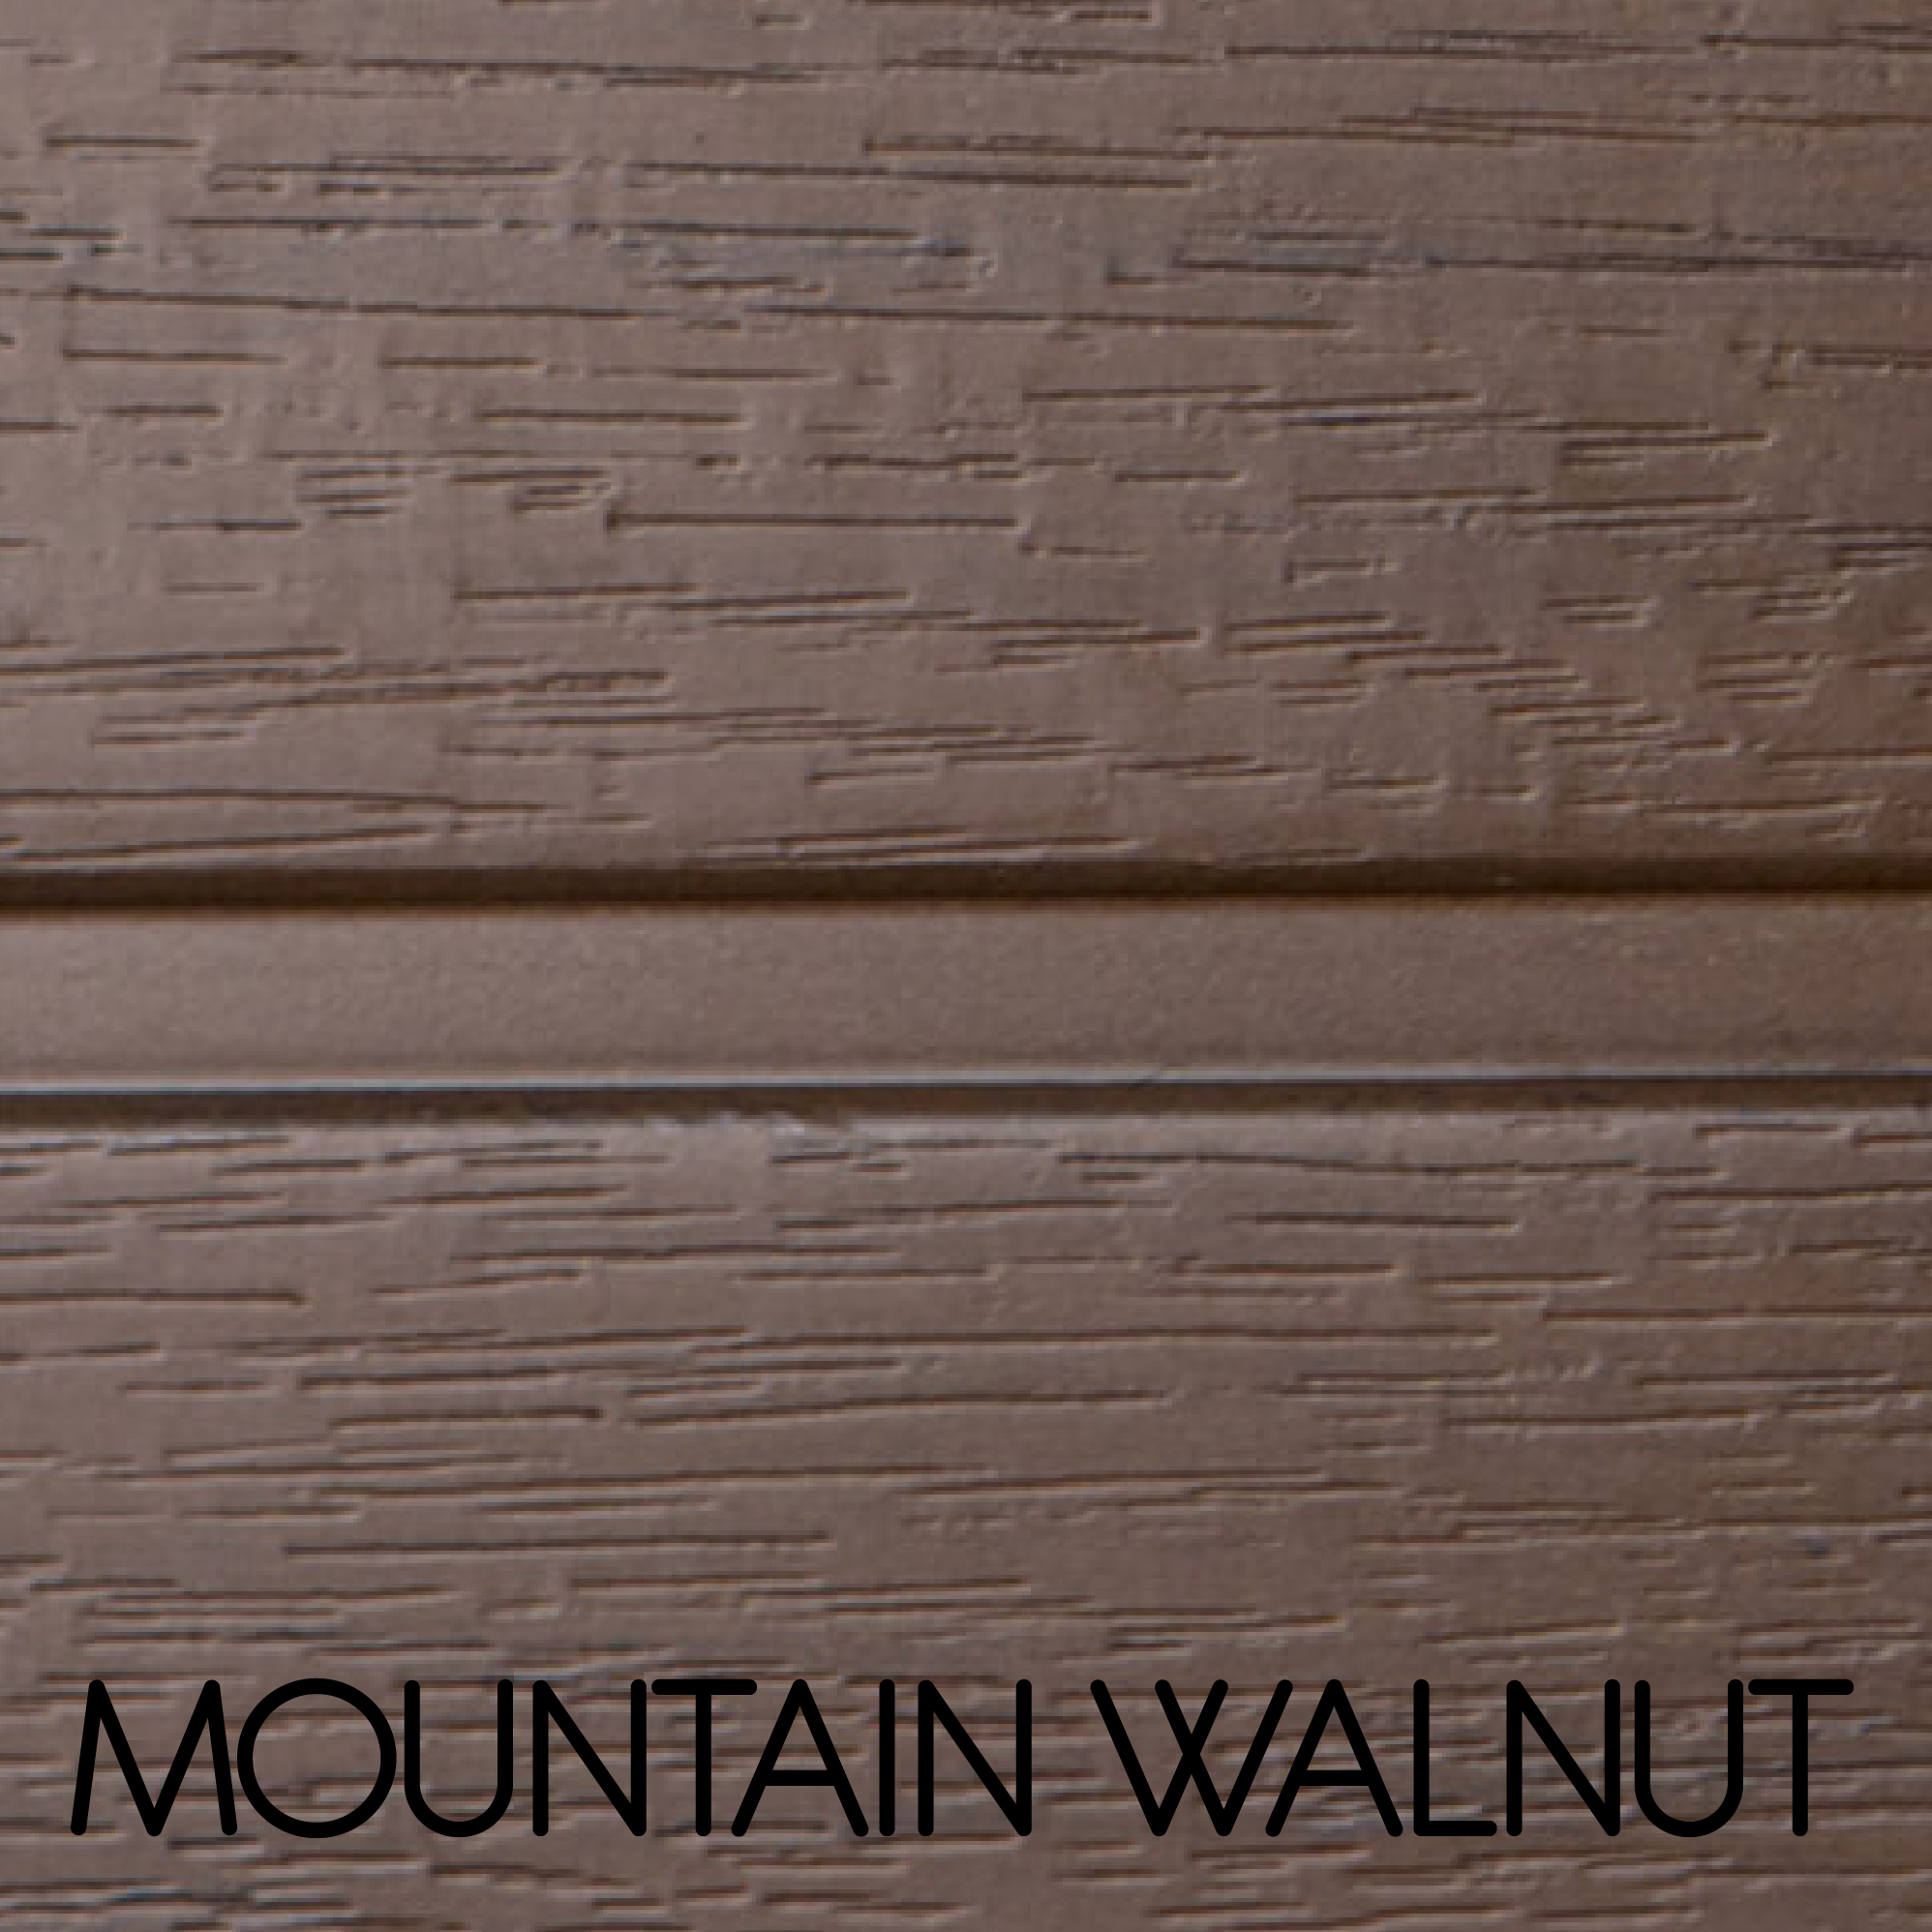 MOUNTAIN WALNUT-01.jpg